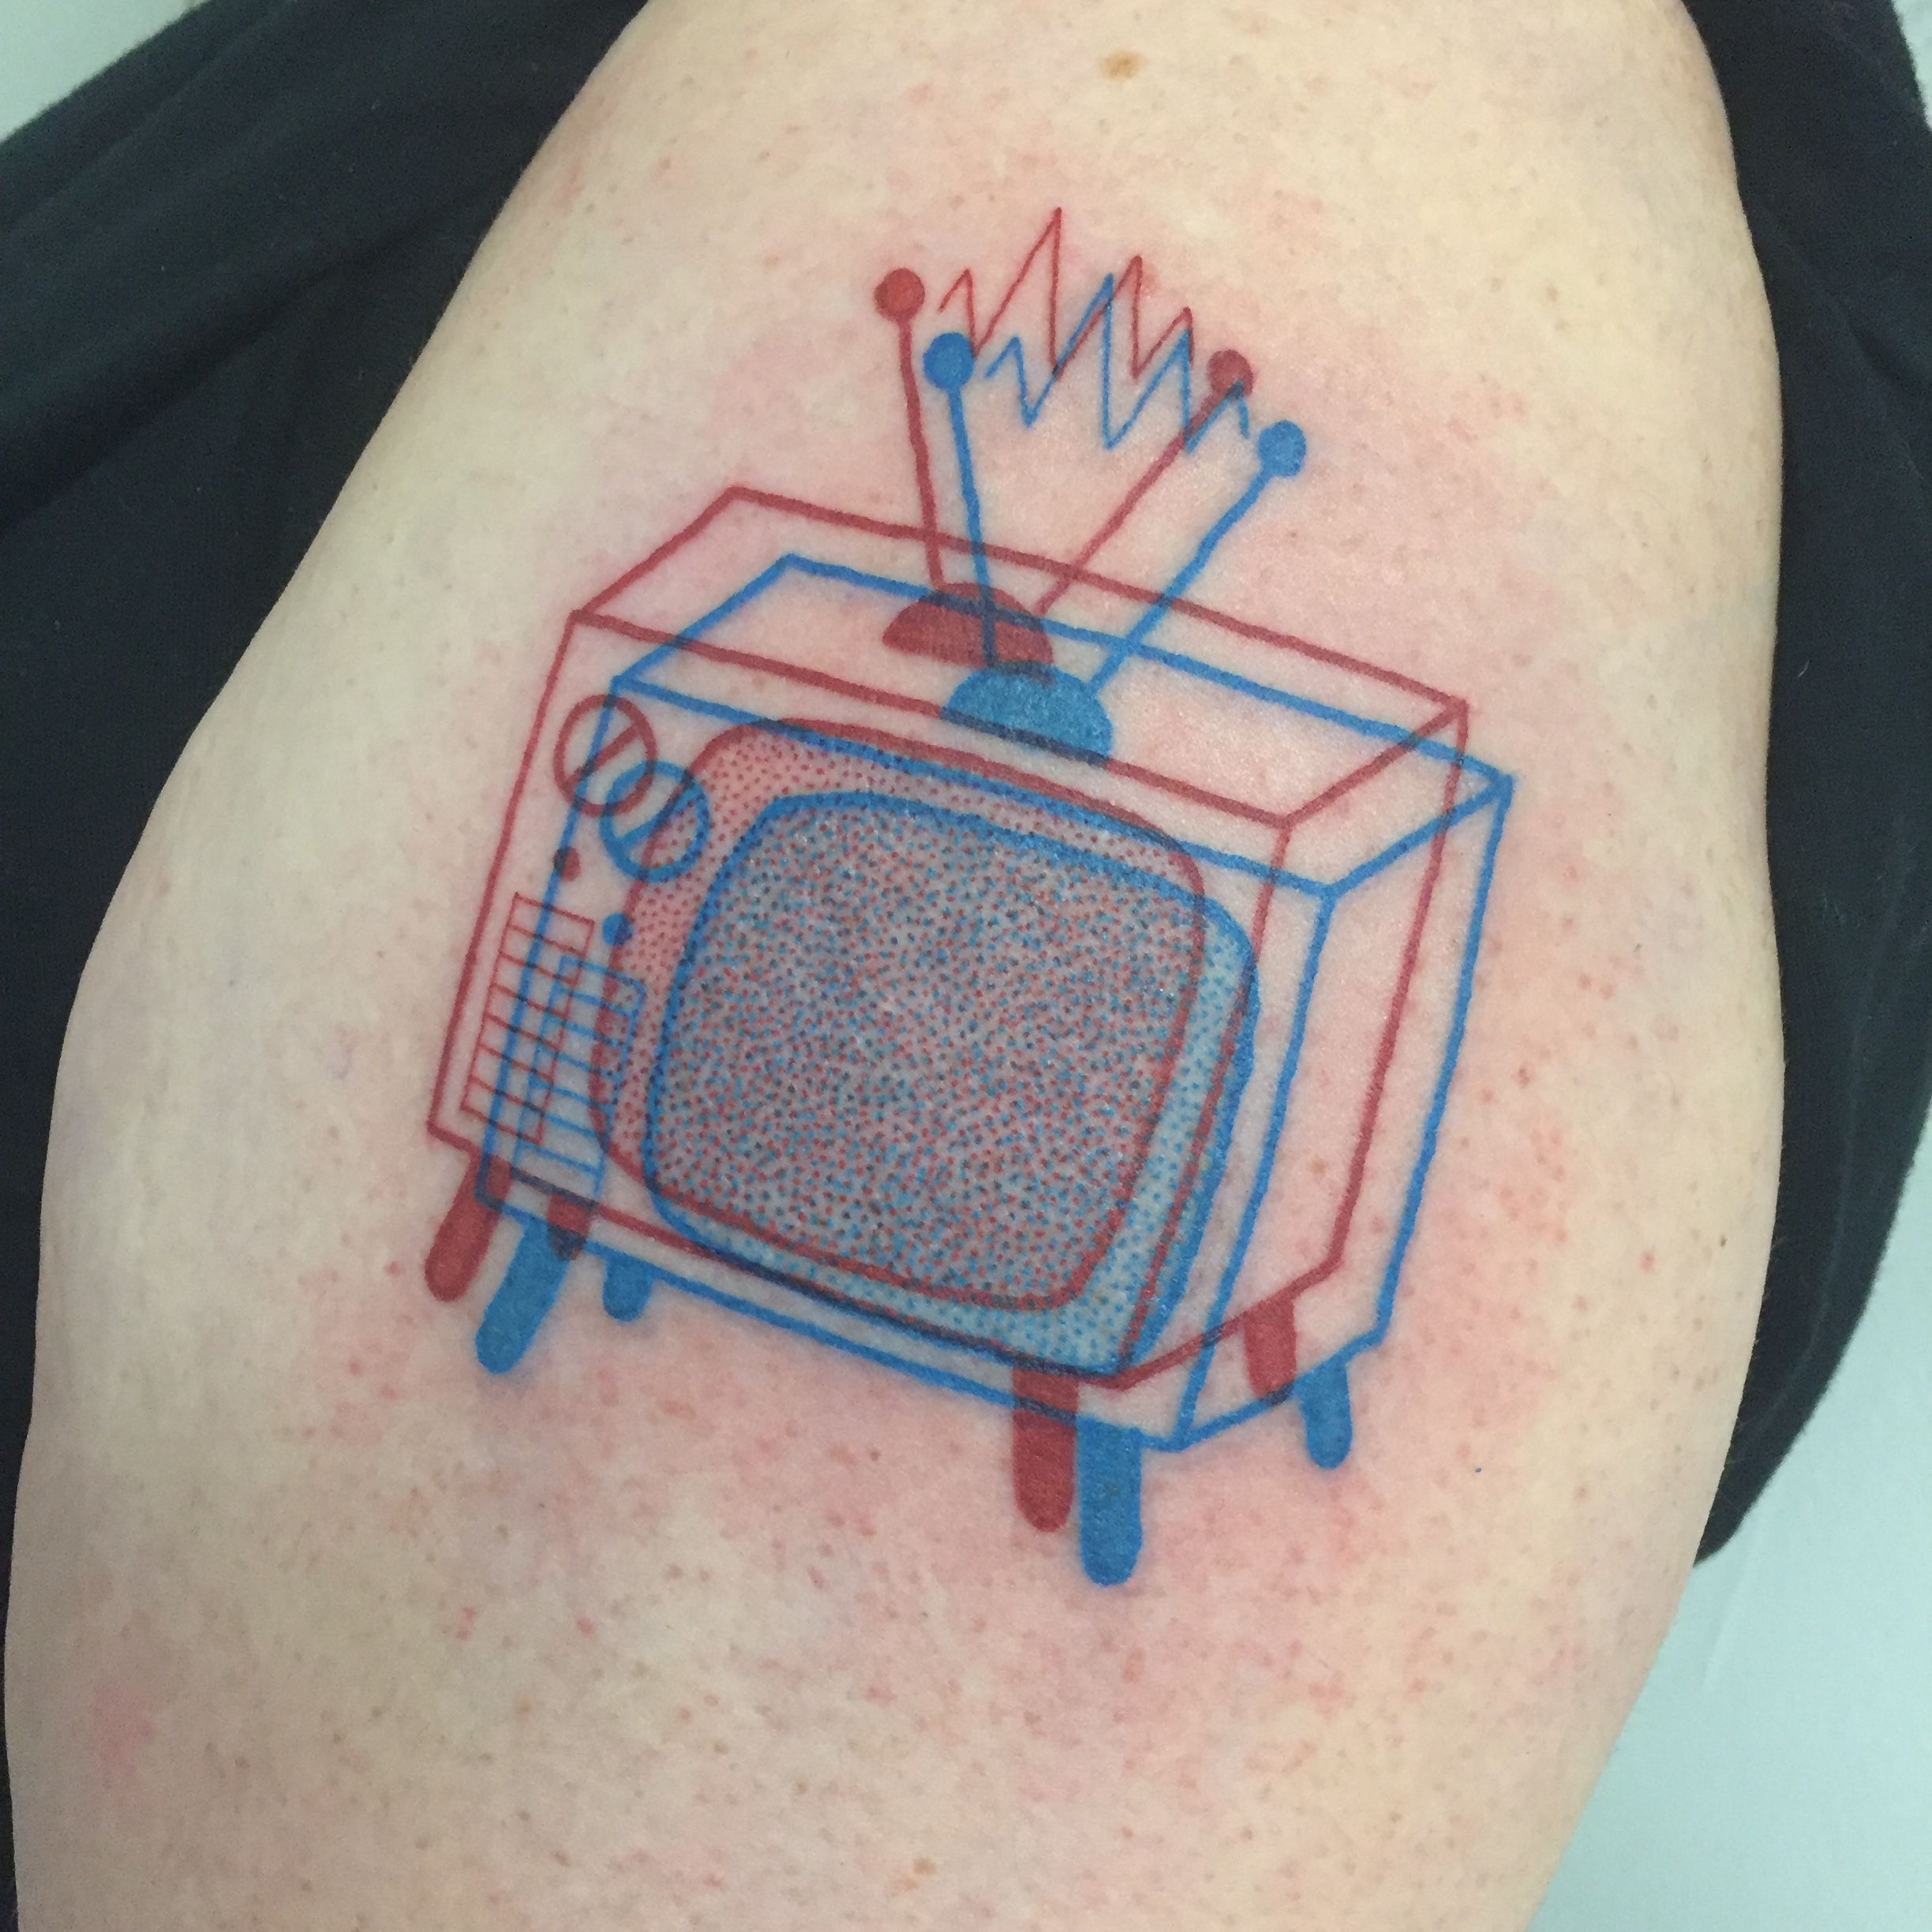 Winston the Whale - 3D TV set tattoo @winstonthewhale